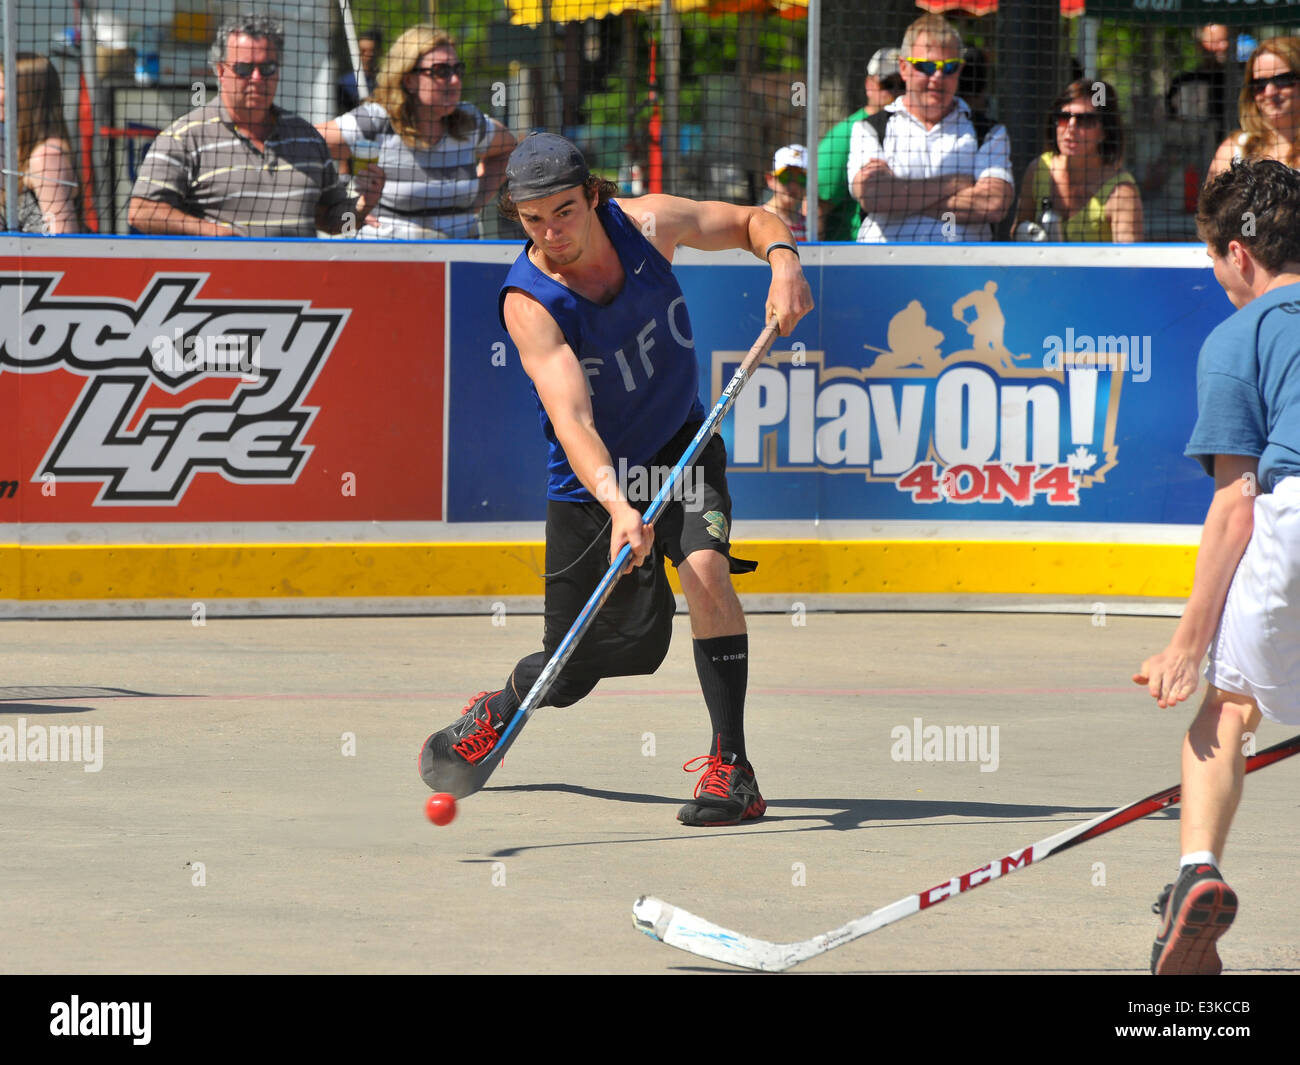 Images From A Play On Hockey Tournament Held In Victoria Park In